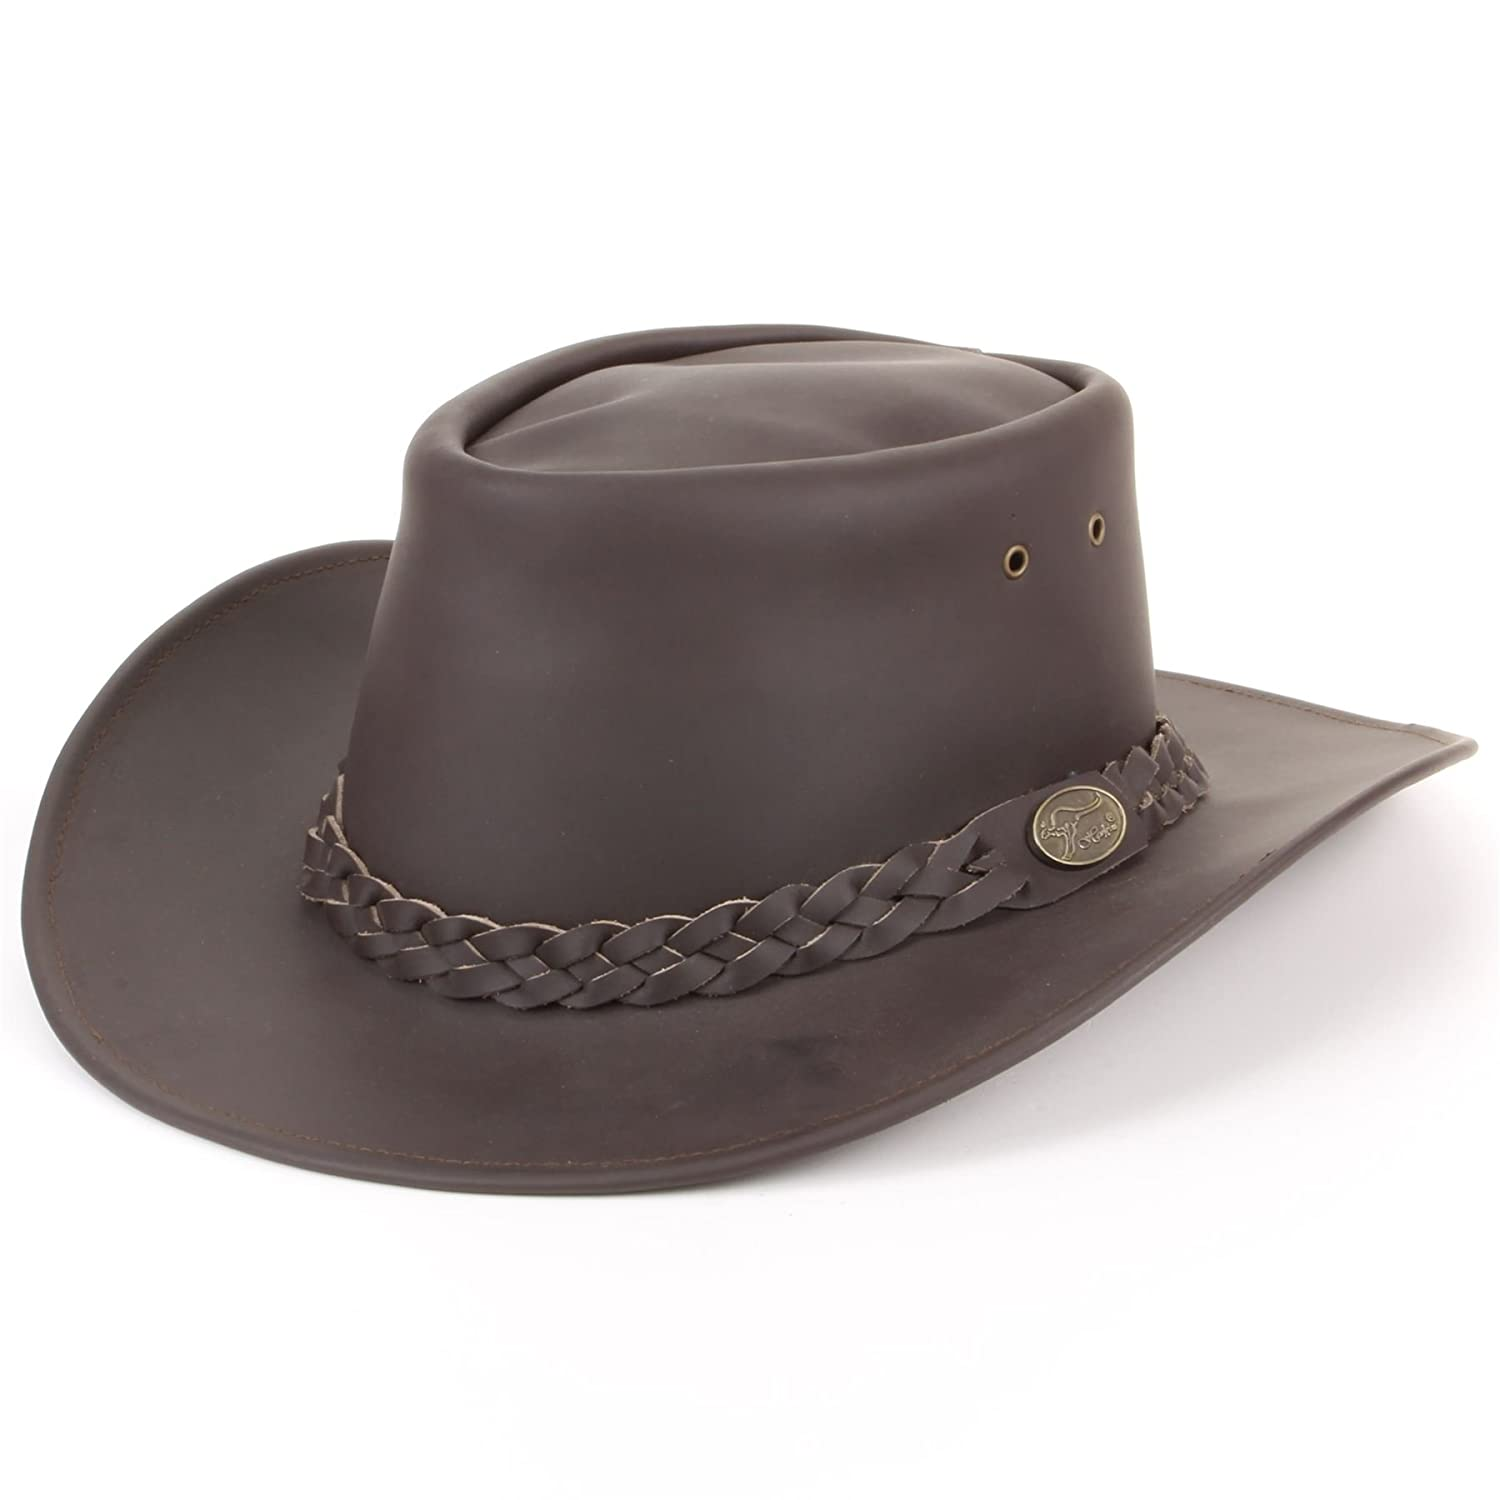 Hawkins Genuine Leather Australian Cowboy Bush Hat - Brown